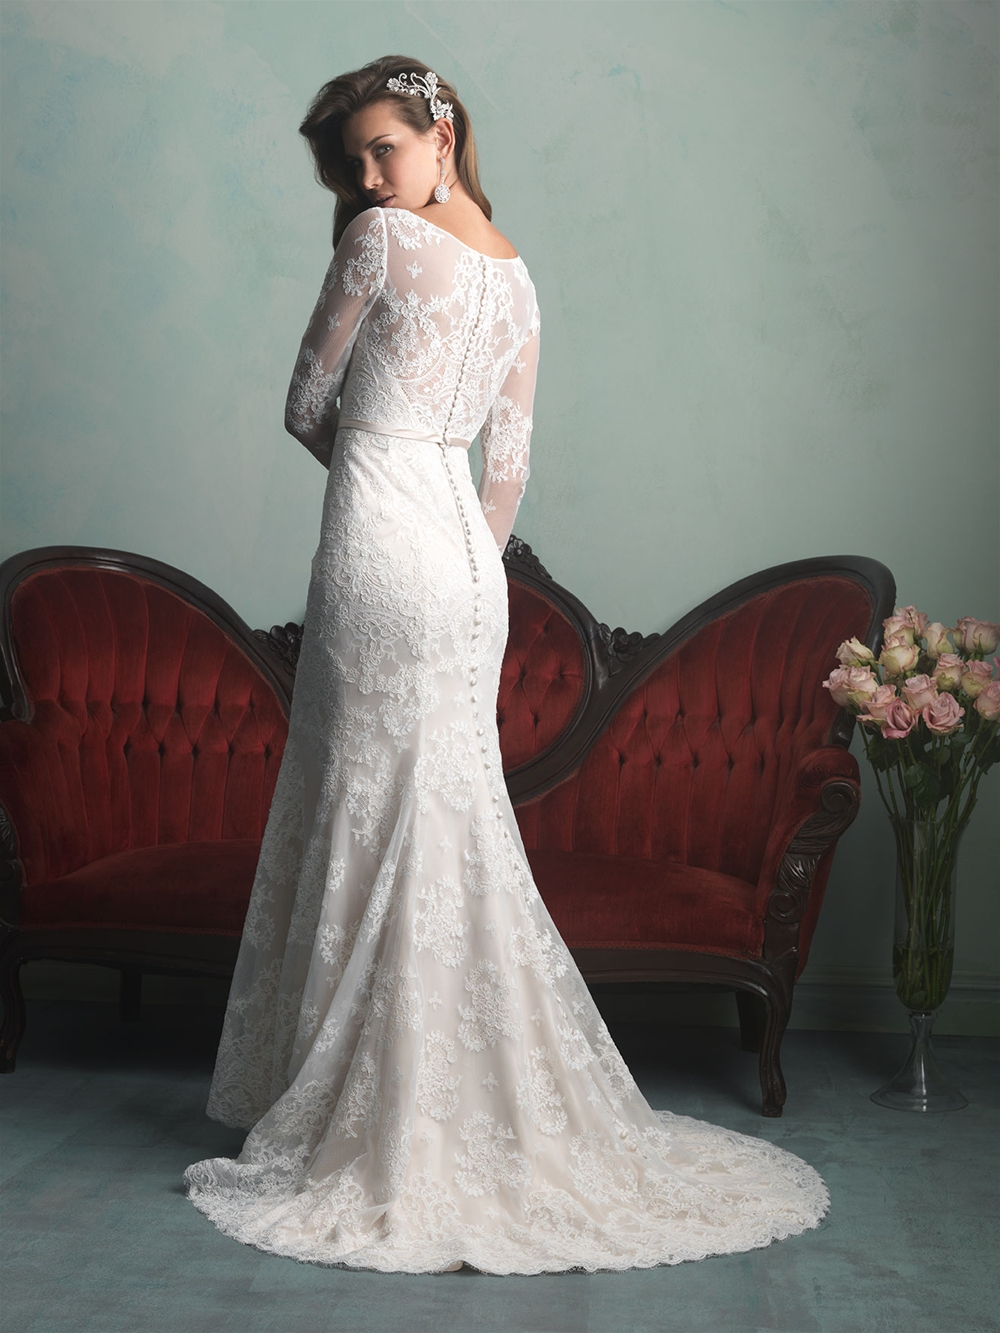 Allure Bridals Archives - LuLu\'s Bridal